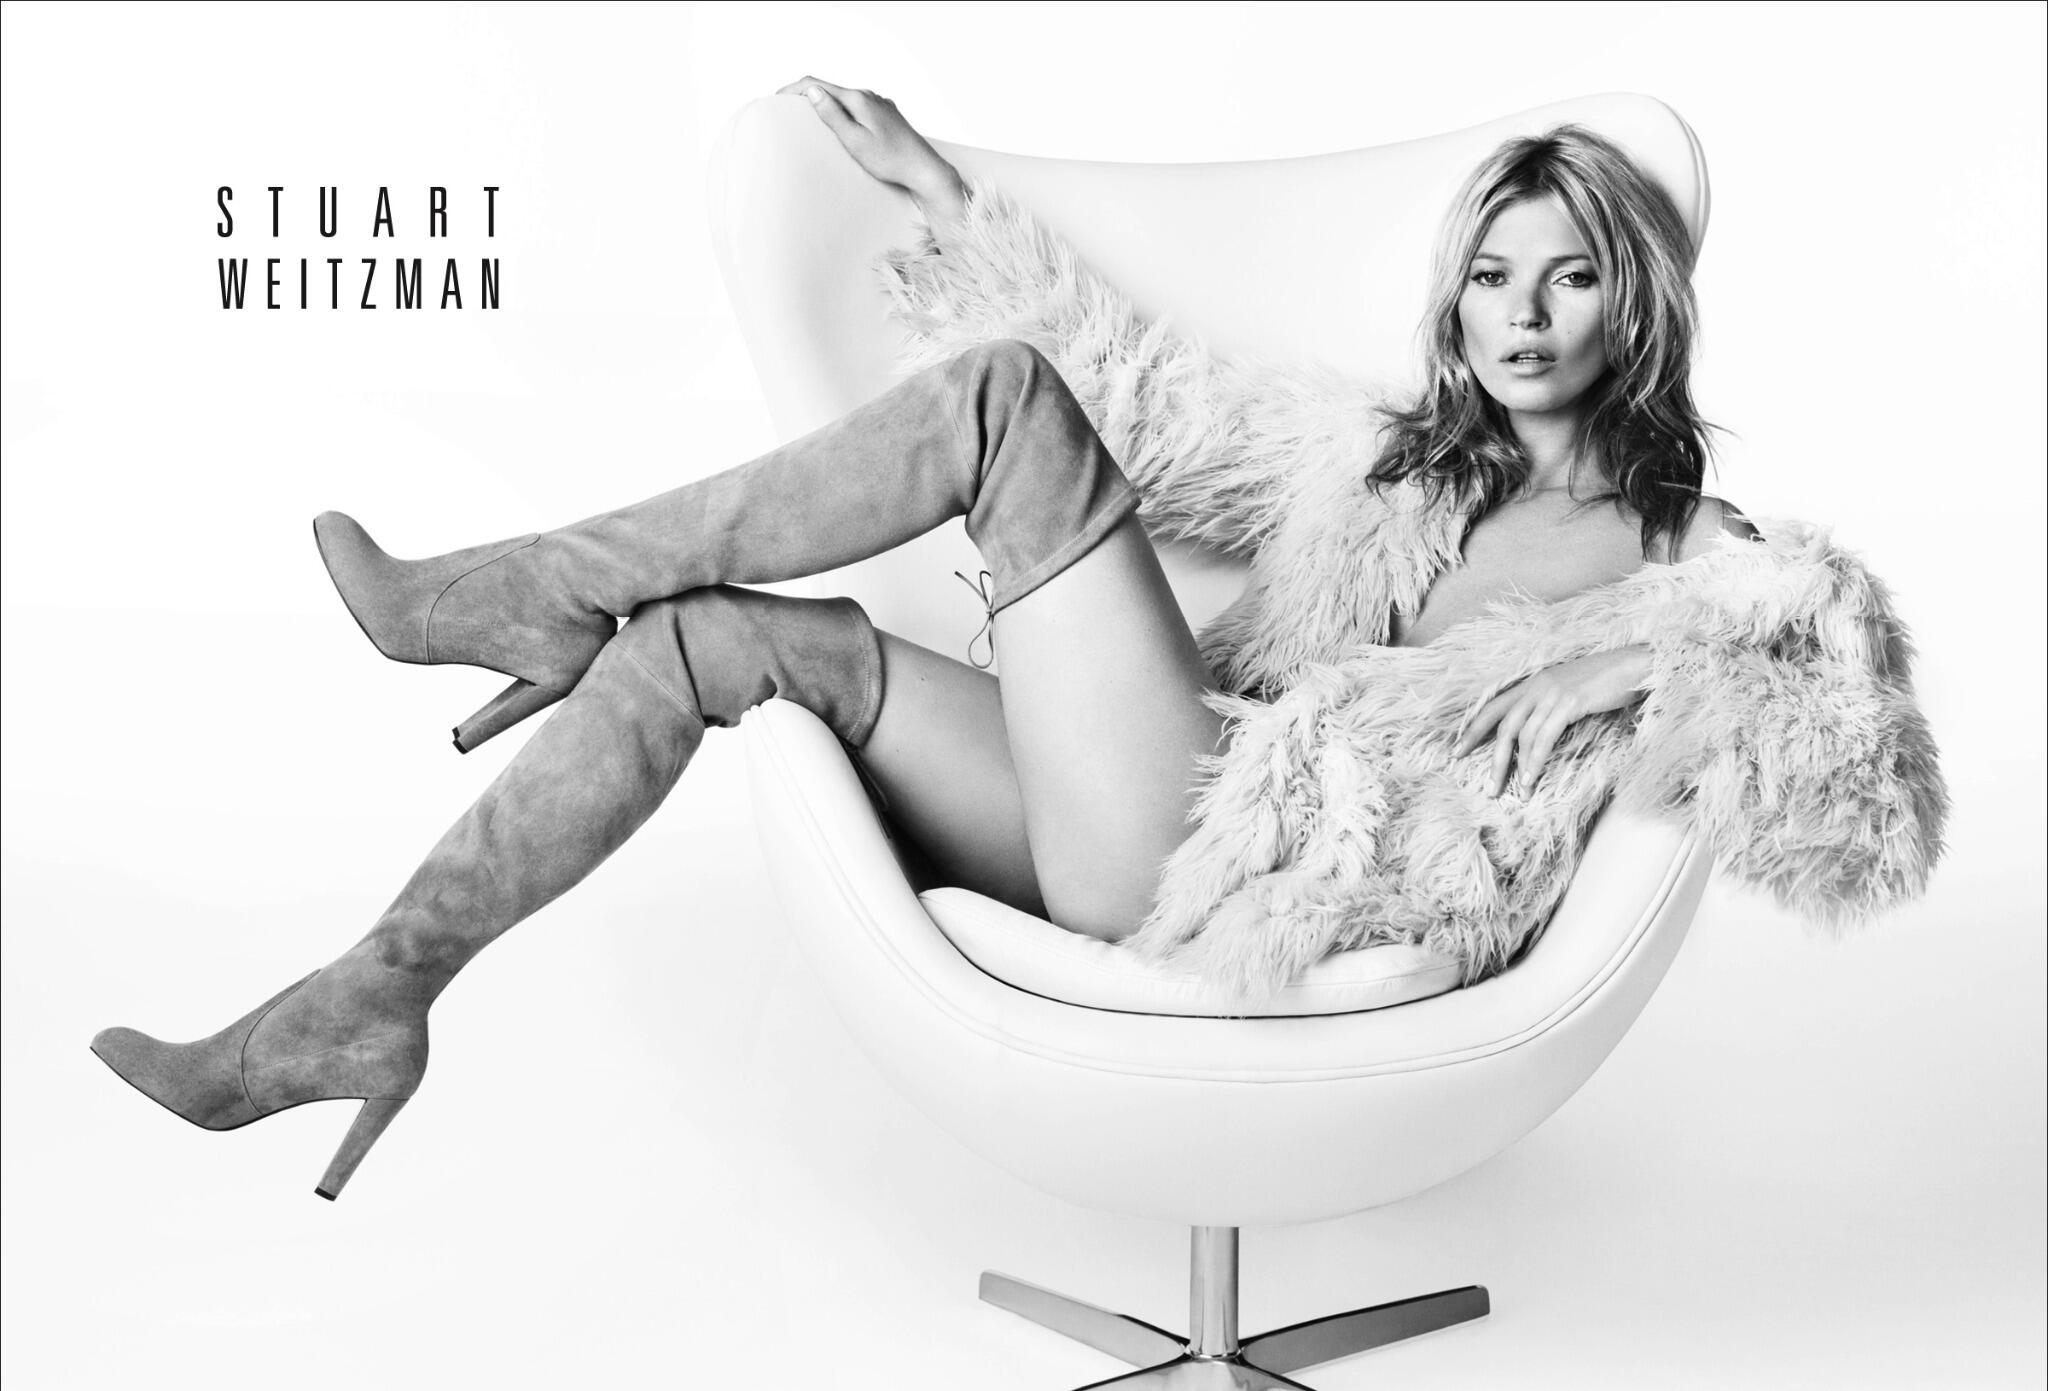 Kate Moss kicks up her heels for @Stuart_Weitzman's autumn 2013 campaign. (Photo by Mario Testino) http://t.co/dEqzrczpzF